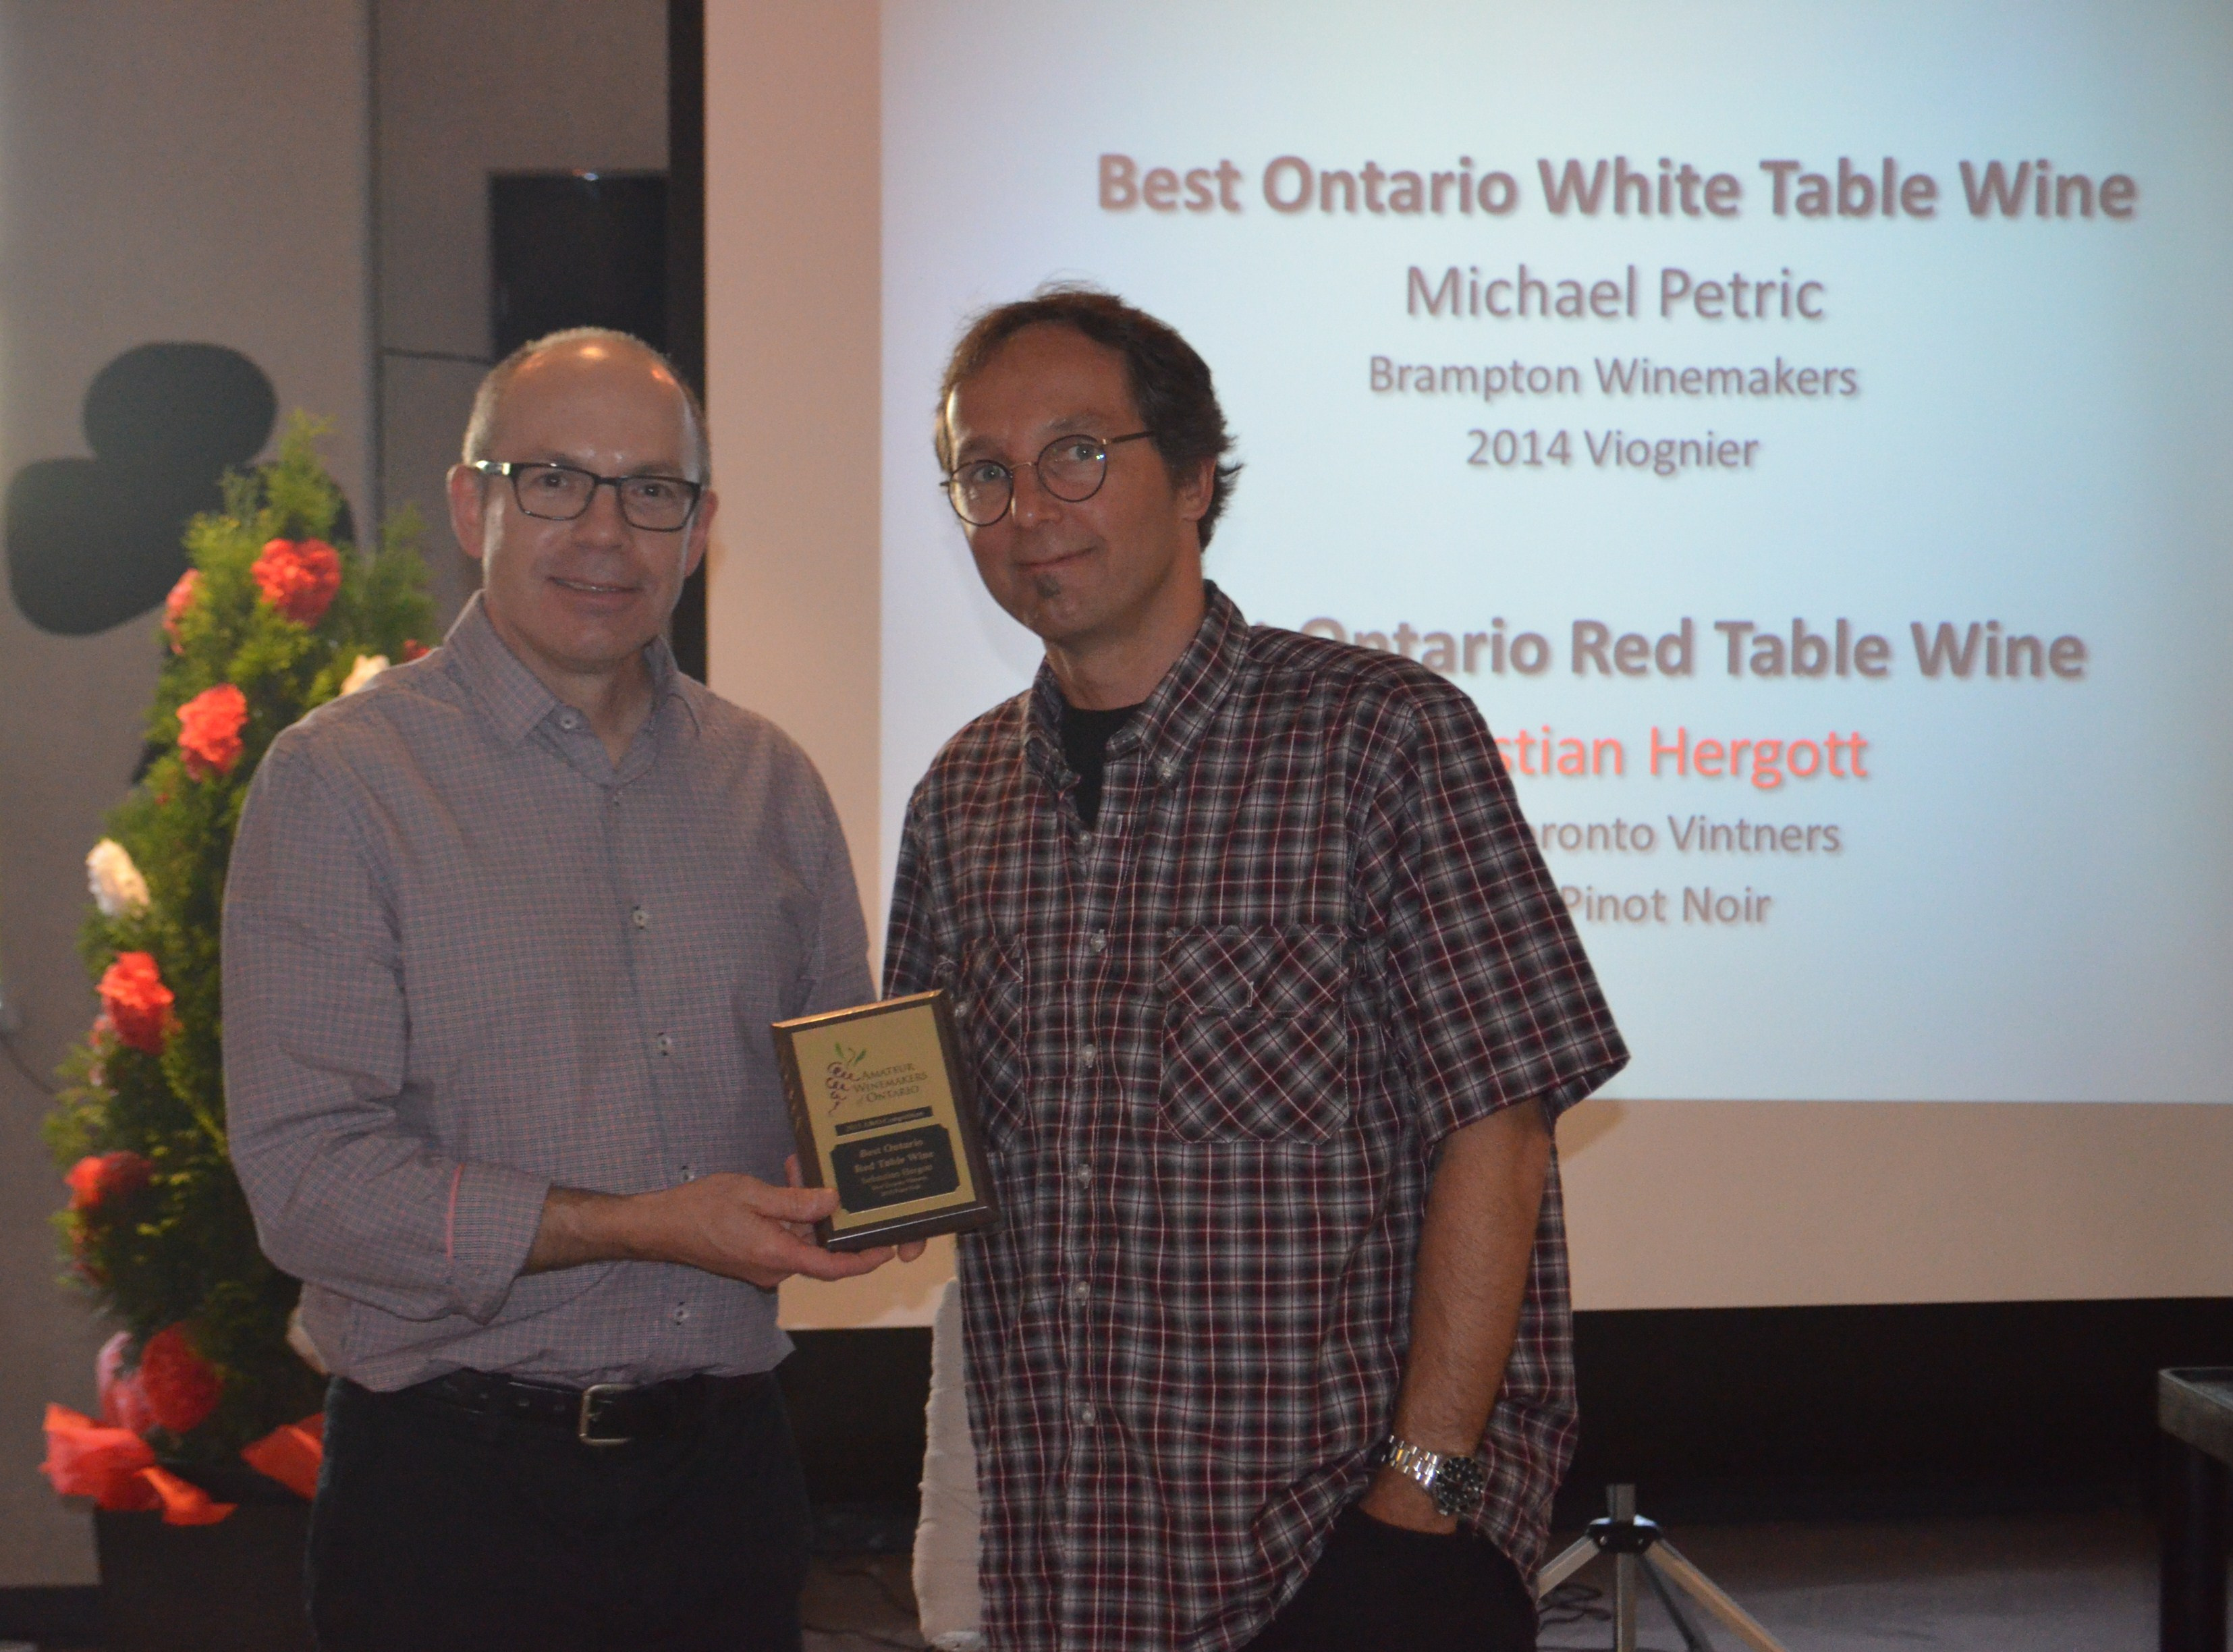 2015-06-06 BEST ONTARIO RED TABLE WINE CHRISTIAN HERGOTT  2015